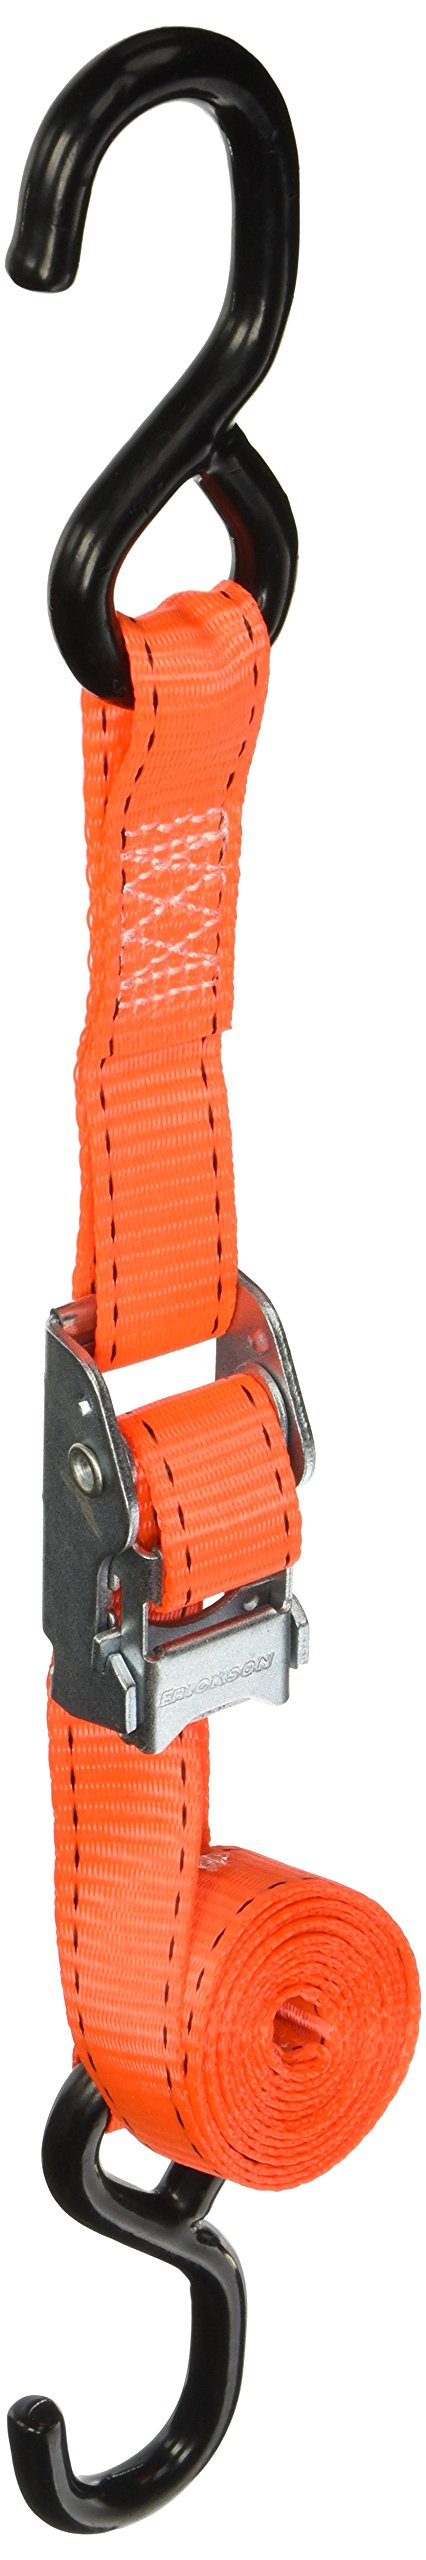 Erickson 05740 Sportsman Tie-Down Strap with Cam Lock, 4 Pack (1'' x 6' long, 2000lb Load Capacity)